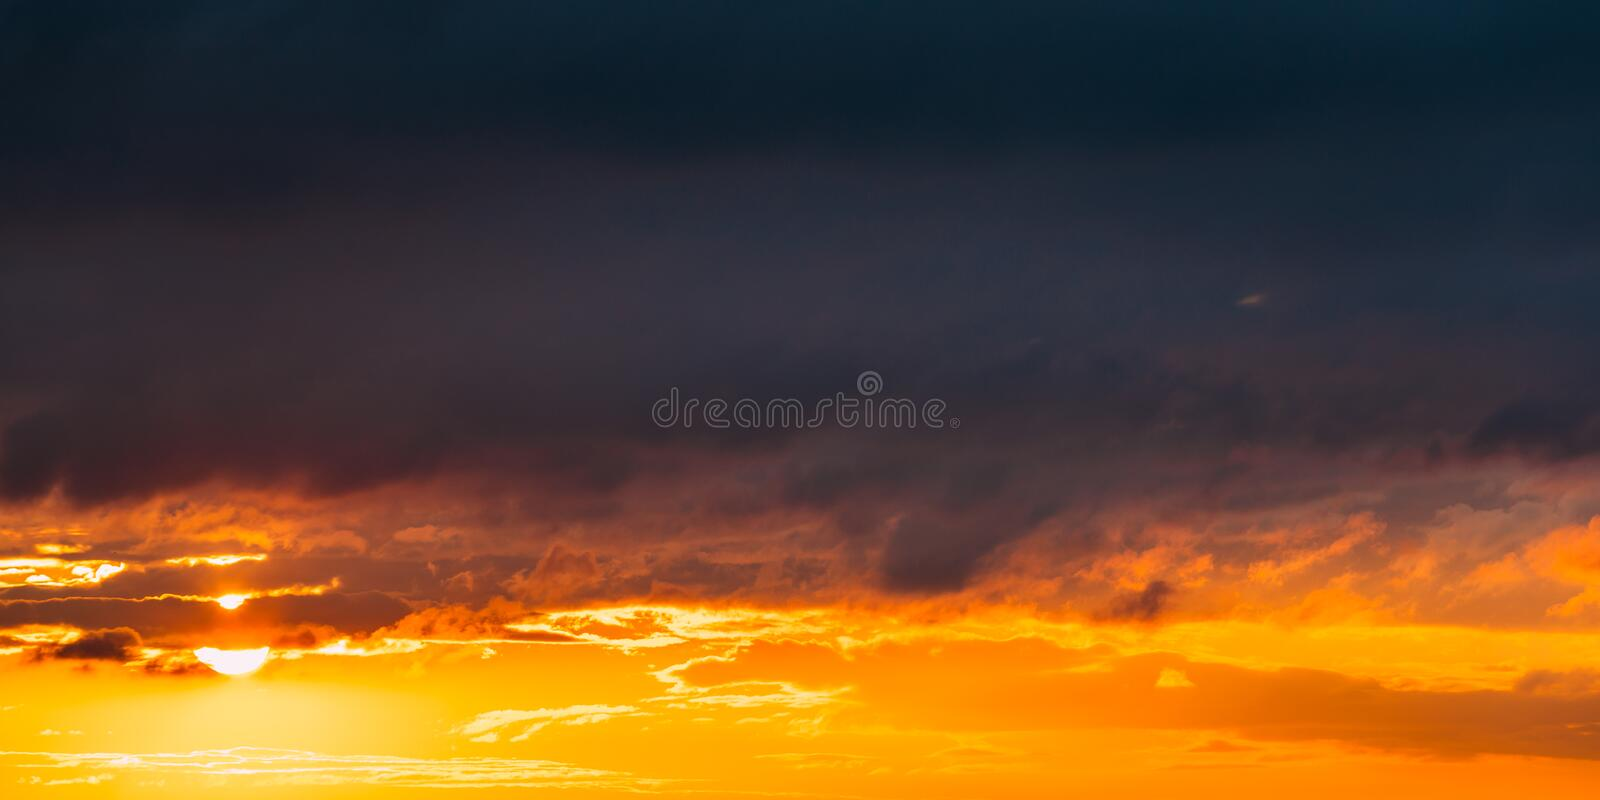 Sunrise Sunset Sunrise Sky. Bright Dramatic Sky With Clouds. Yellow. Orange, Blue And Magenta Colours. Panorama, Panoramic View royalty free stock image